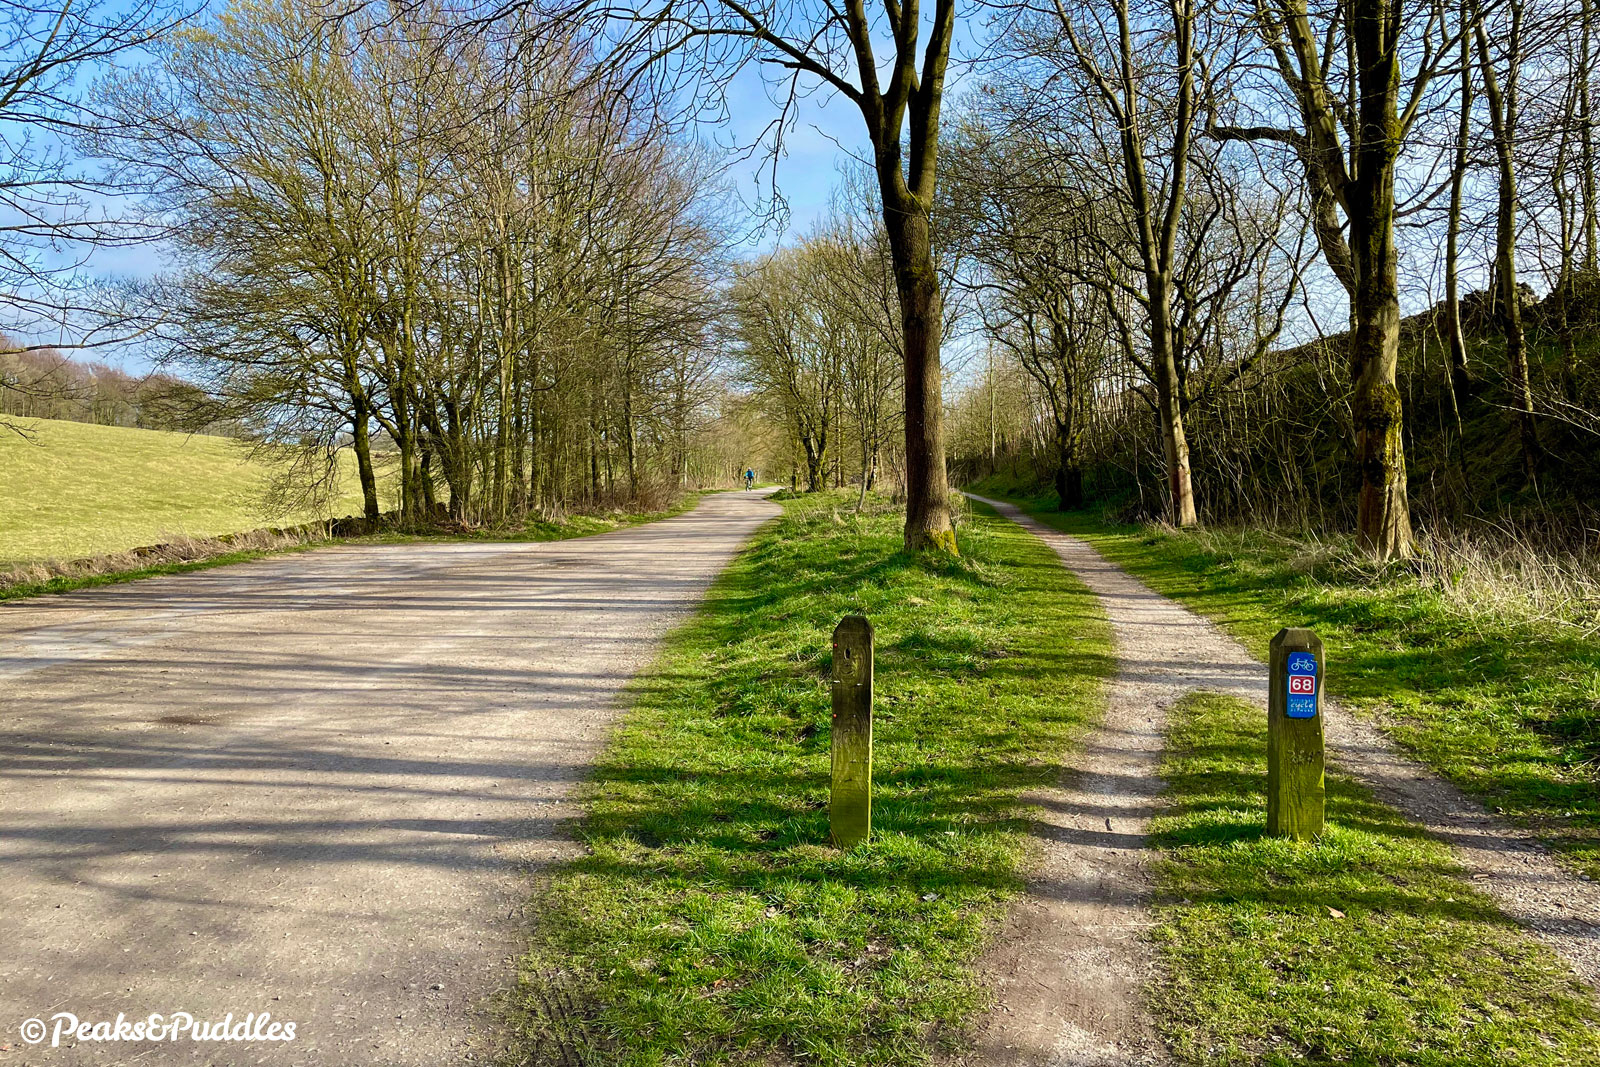 Joining the High Peak Trail at Hurdlow, there are separate paths around the side of the car park: you can ride any way, they all join up later.